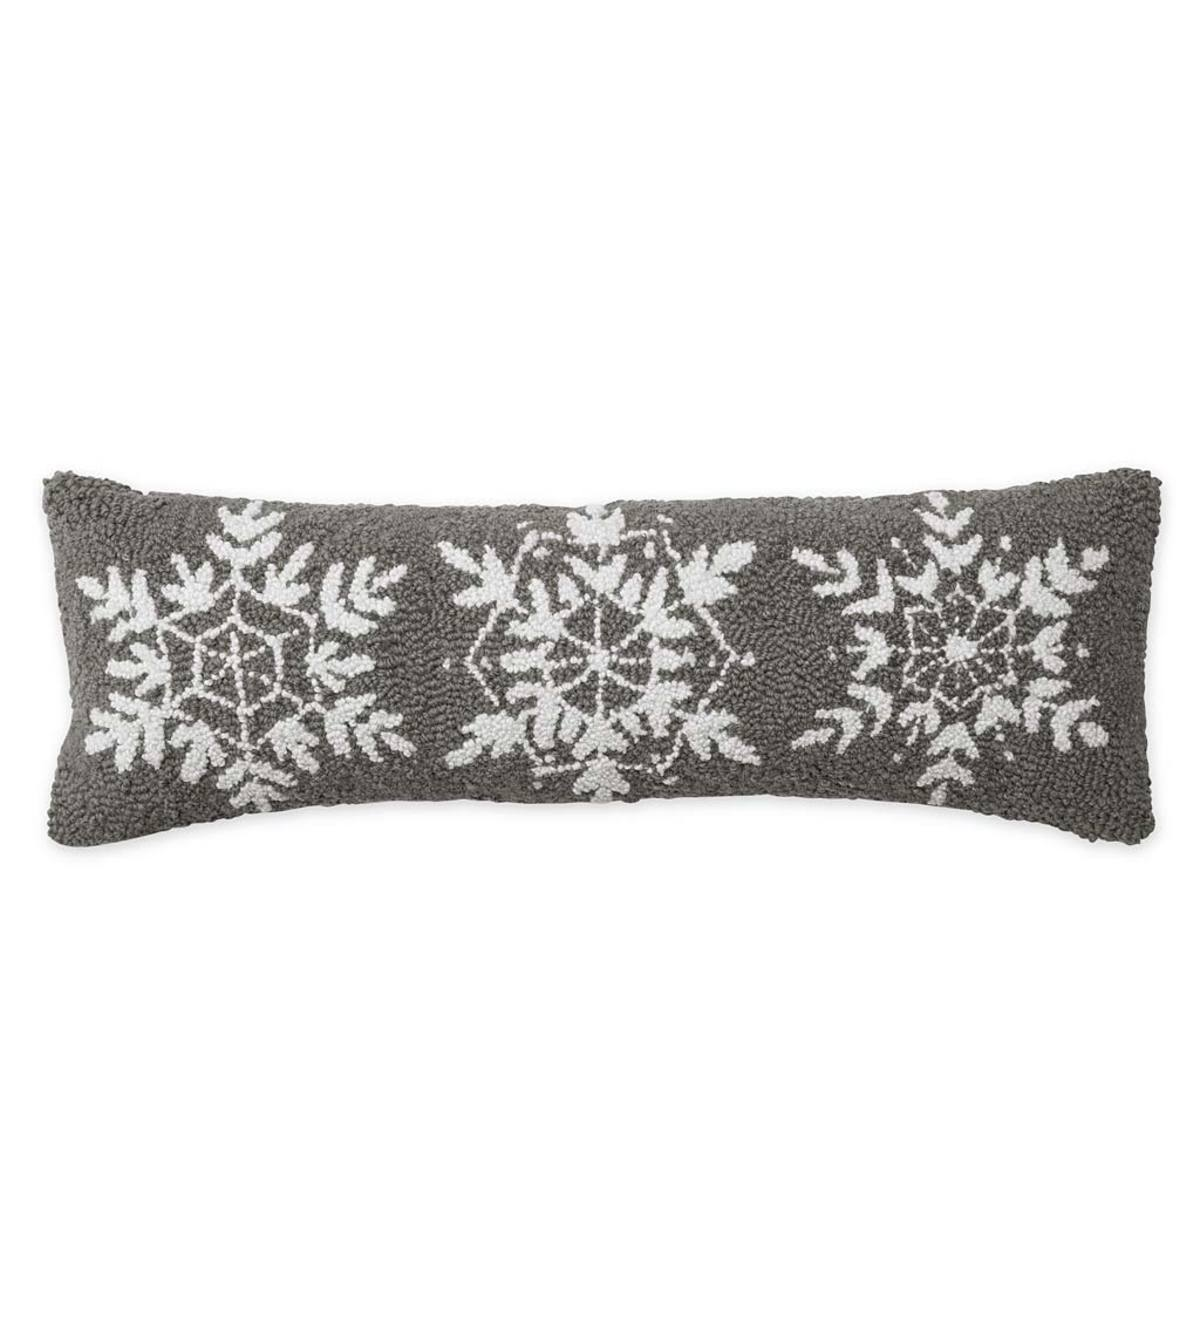 Hand-Hooked Wool Holiday Snowflake Lumbar Throw Pillow